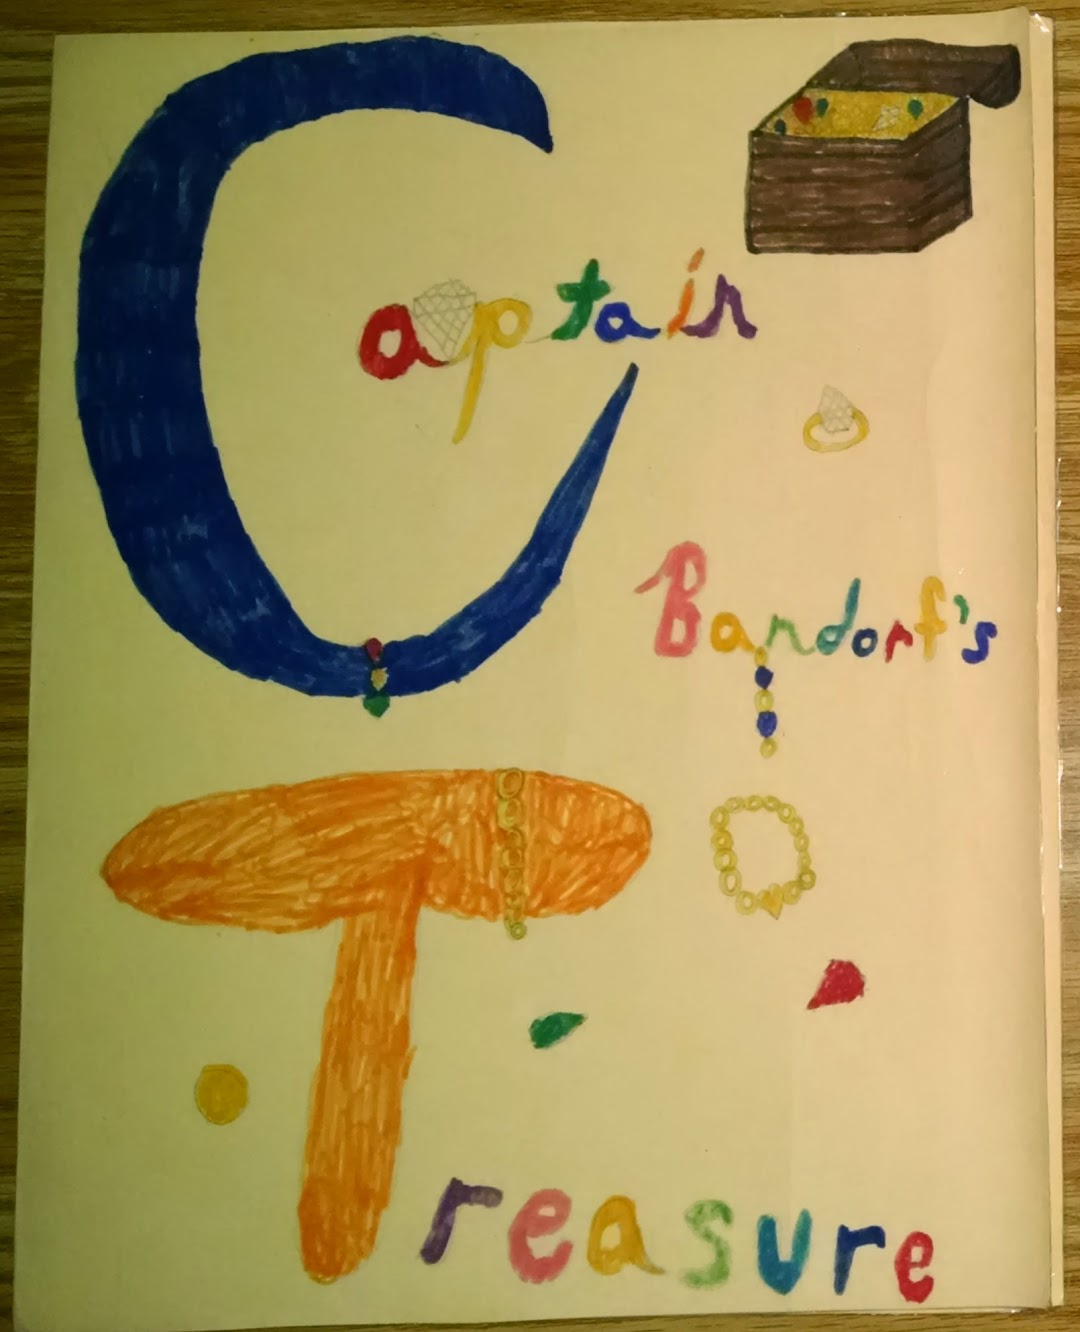 Captain Bandorf's Treasure cover